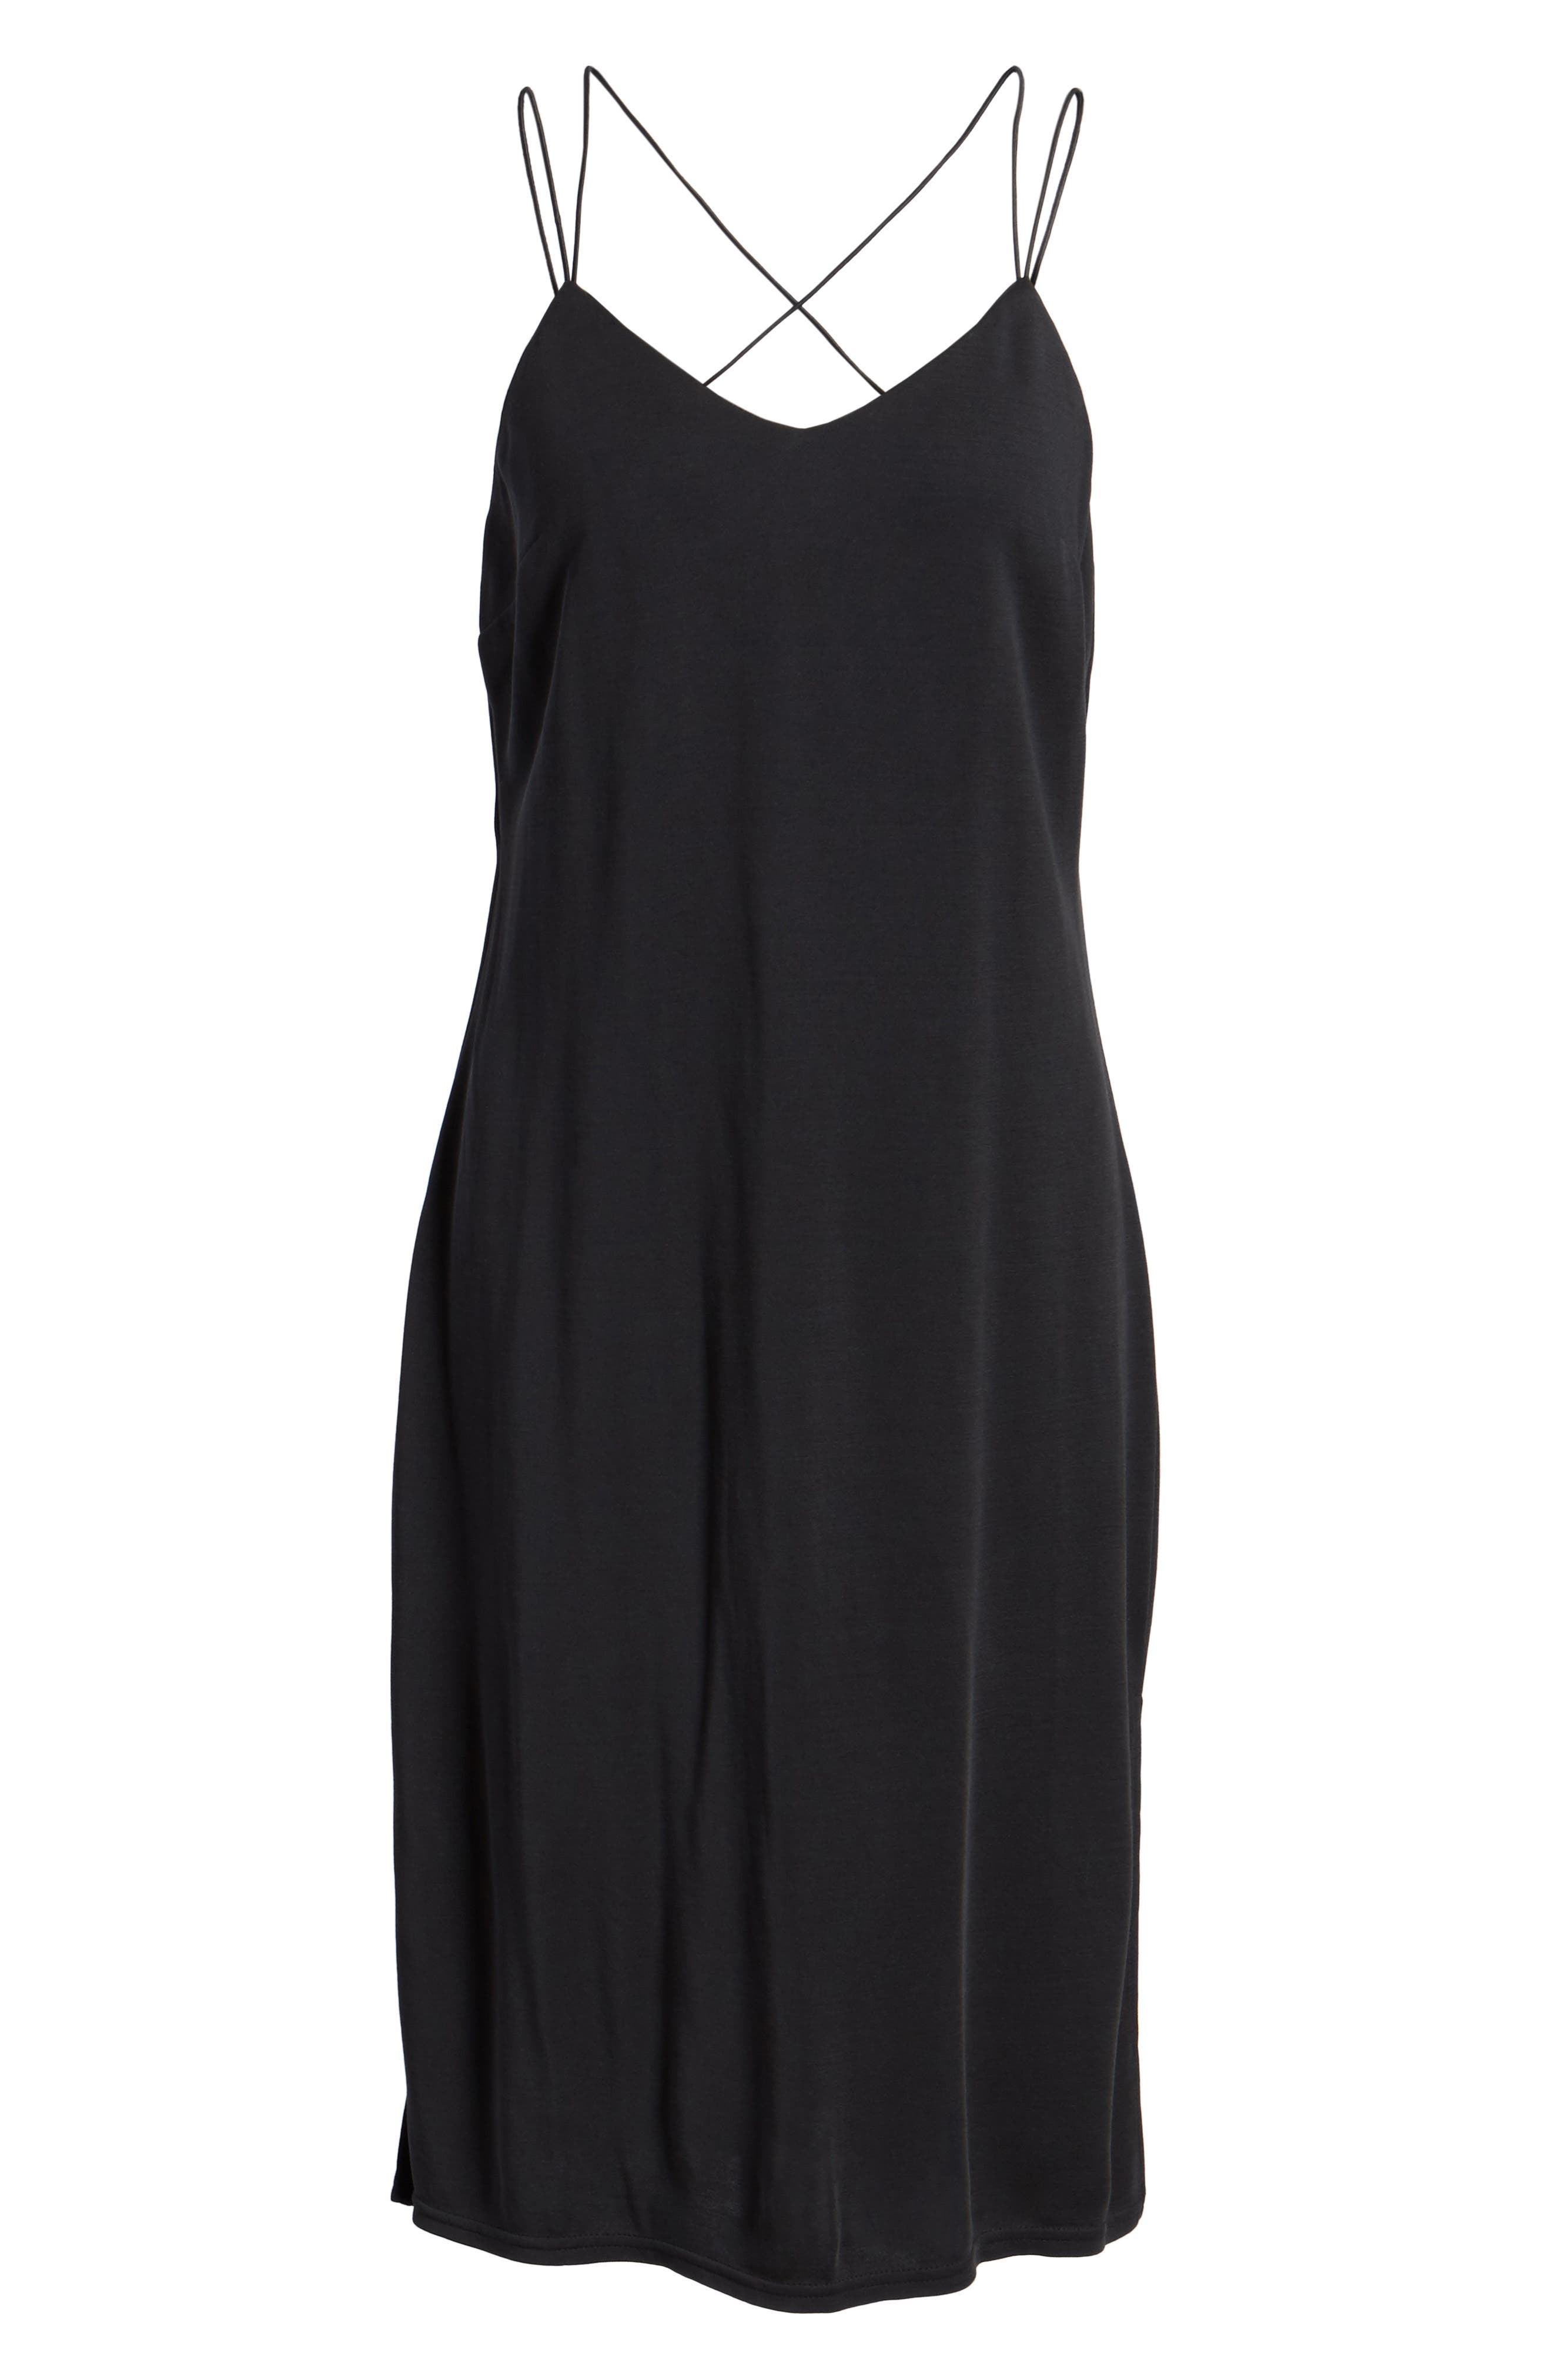 Alley Strappy Camisole Dress,                             Alternate thumbnail 6, color,                             001